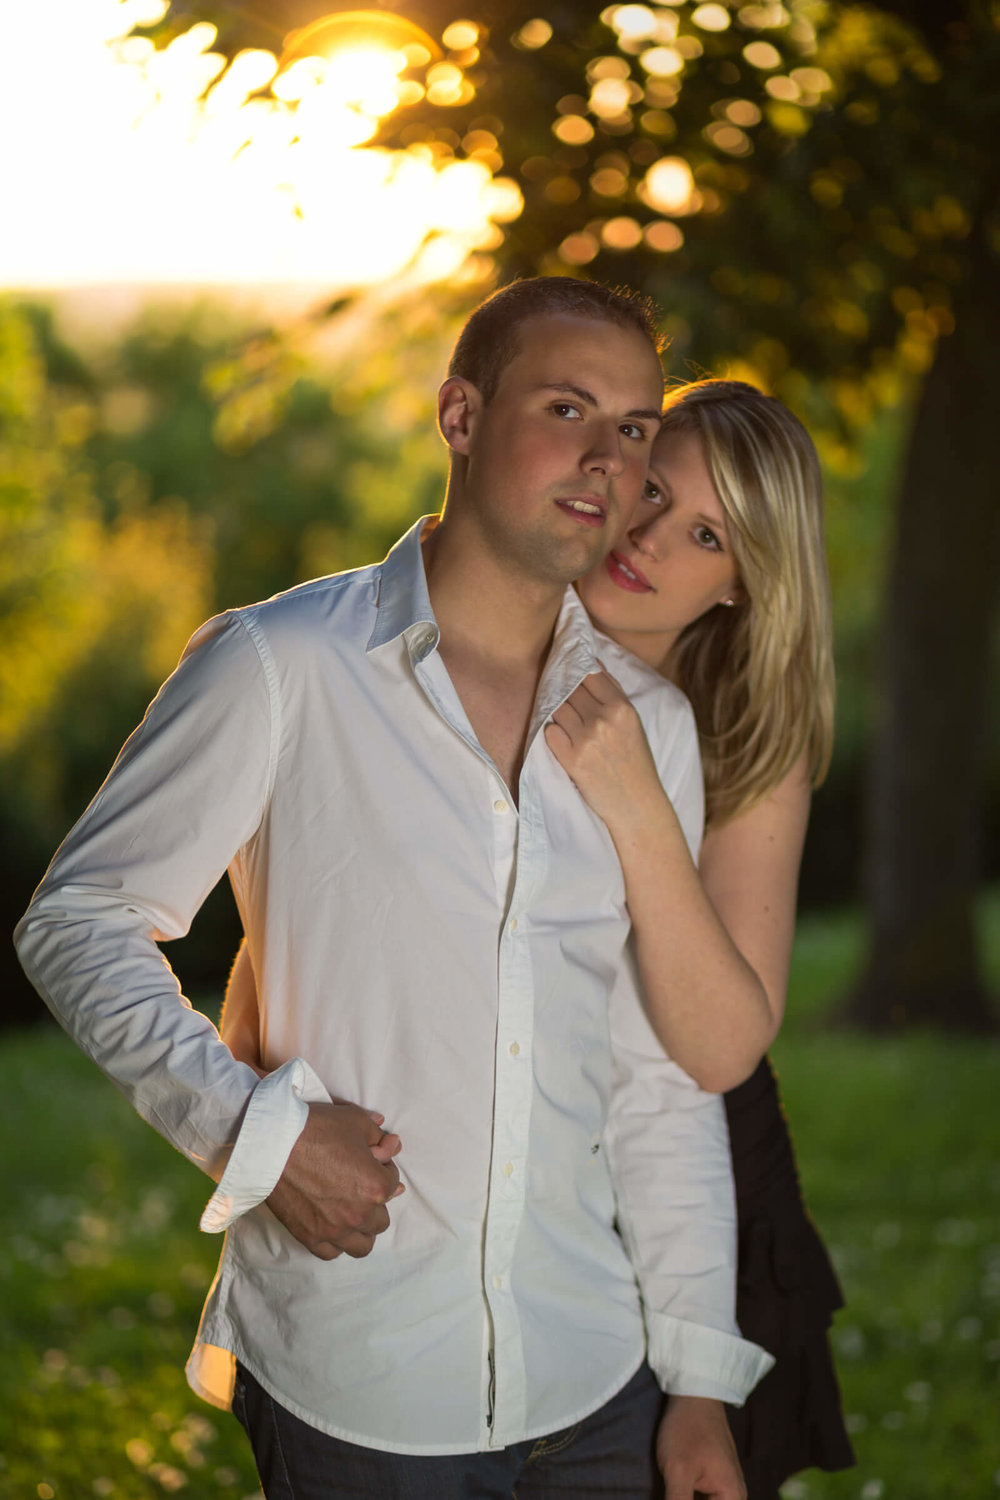 Photographe epernay Photo couple Tristan Meunier-4.jpg